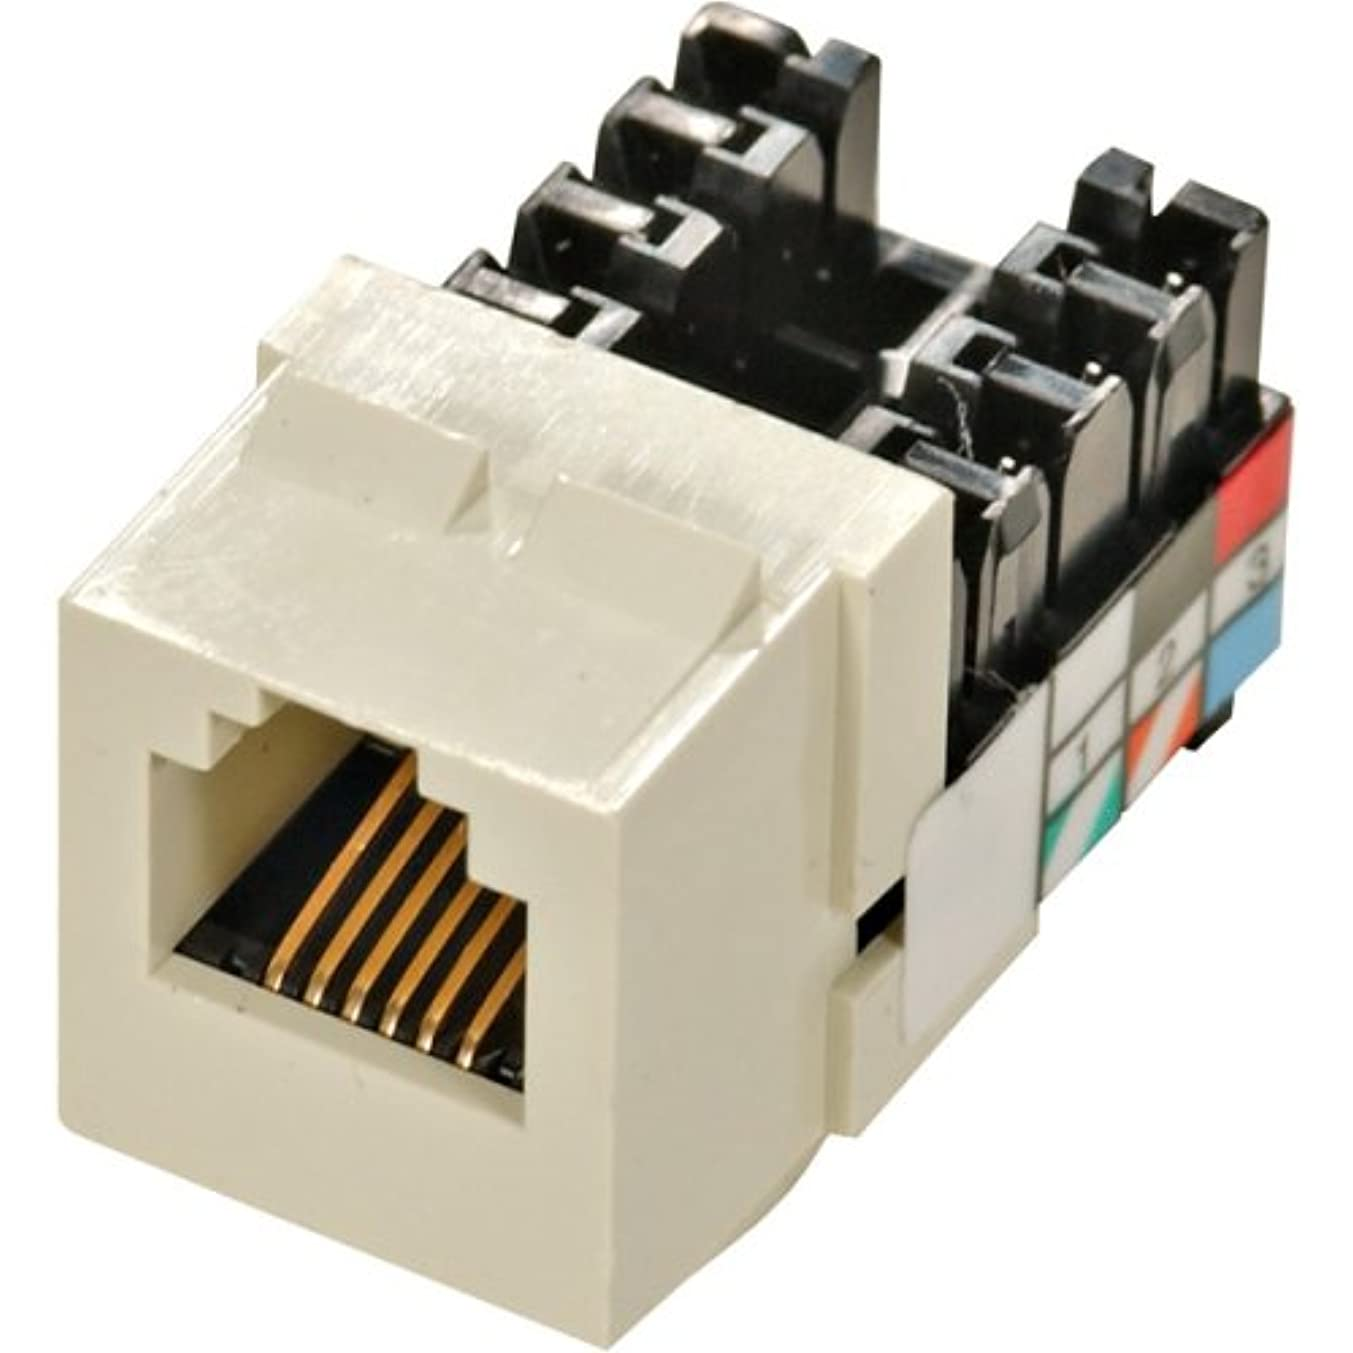 Leviton Quickport 6 Position, 6 Conductor Voice Grade Jack, Almond